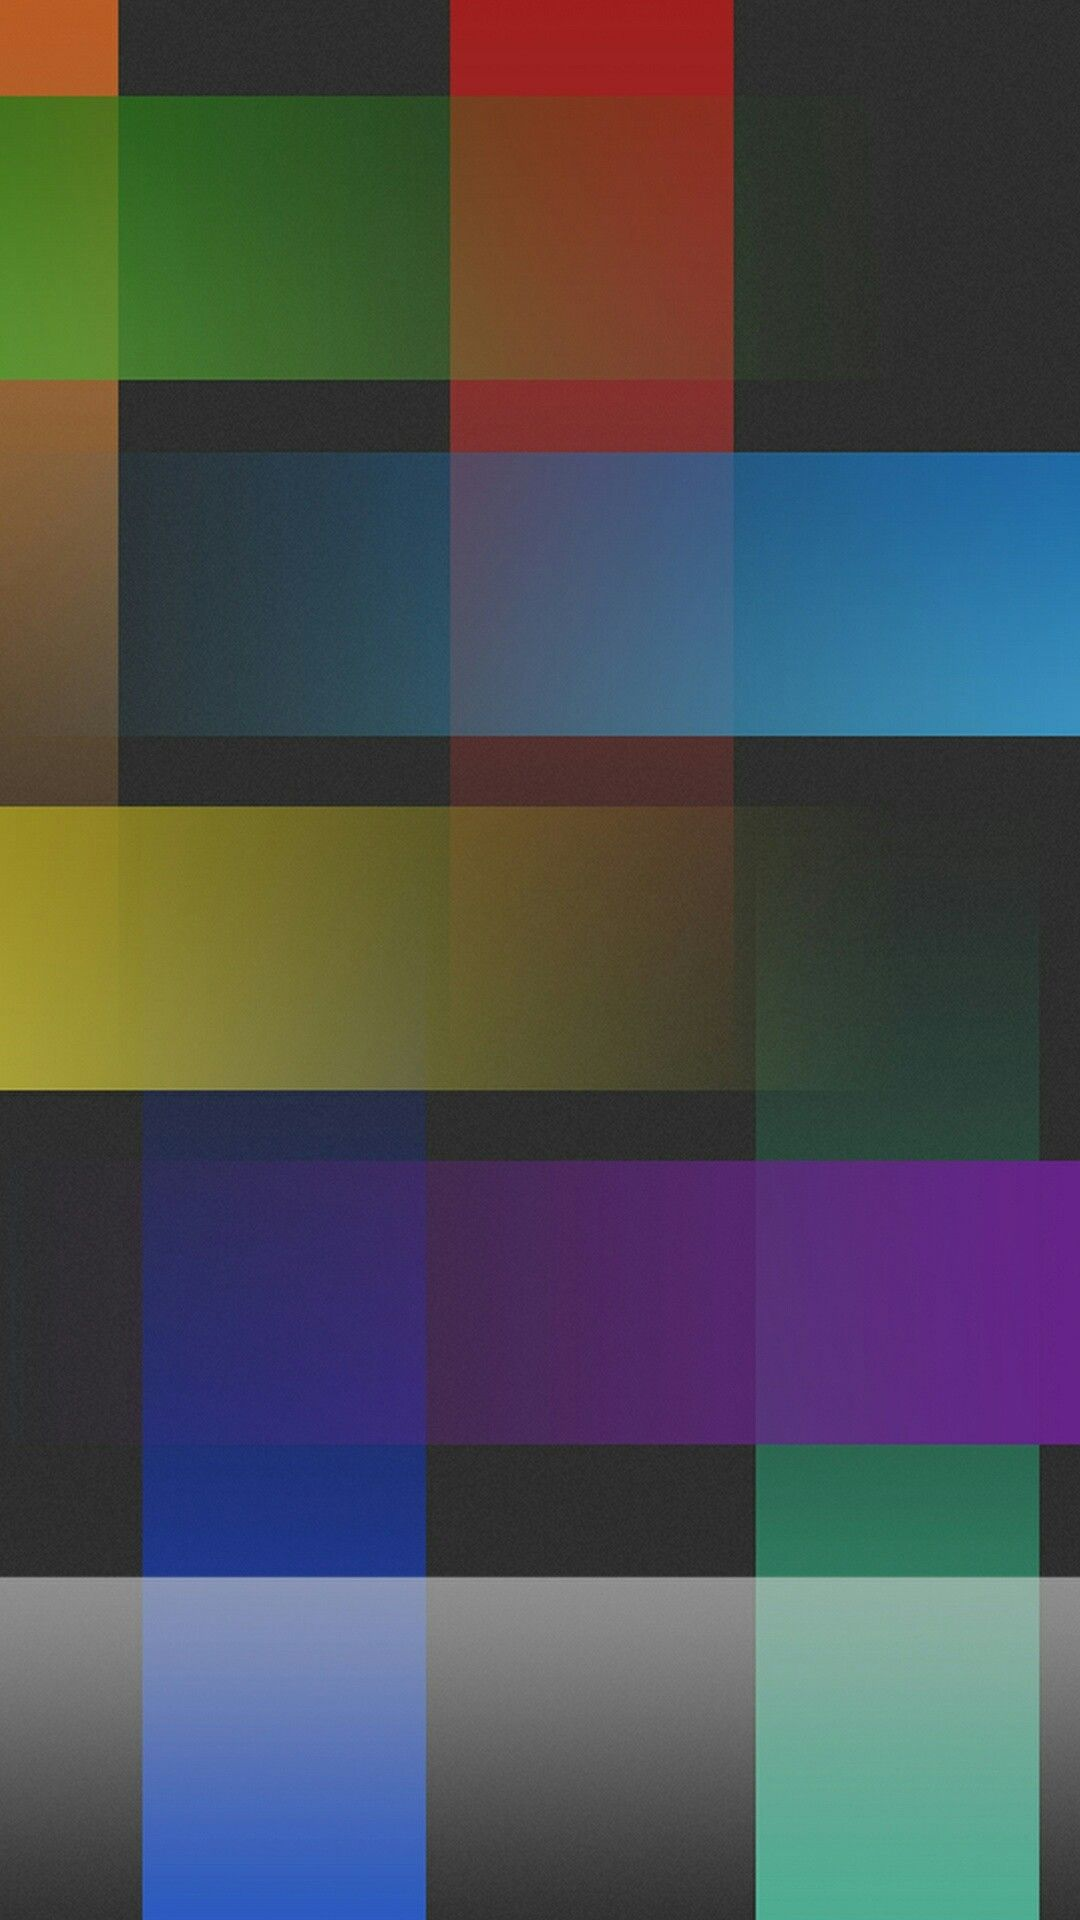 Simple Wallpaper Cell Phone Colorful - 0f3b4f8ad97cabab0dcb9af5ae634a36  Best Photo Reference_278125 .jpg